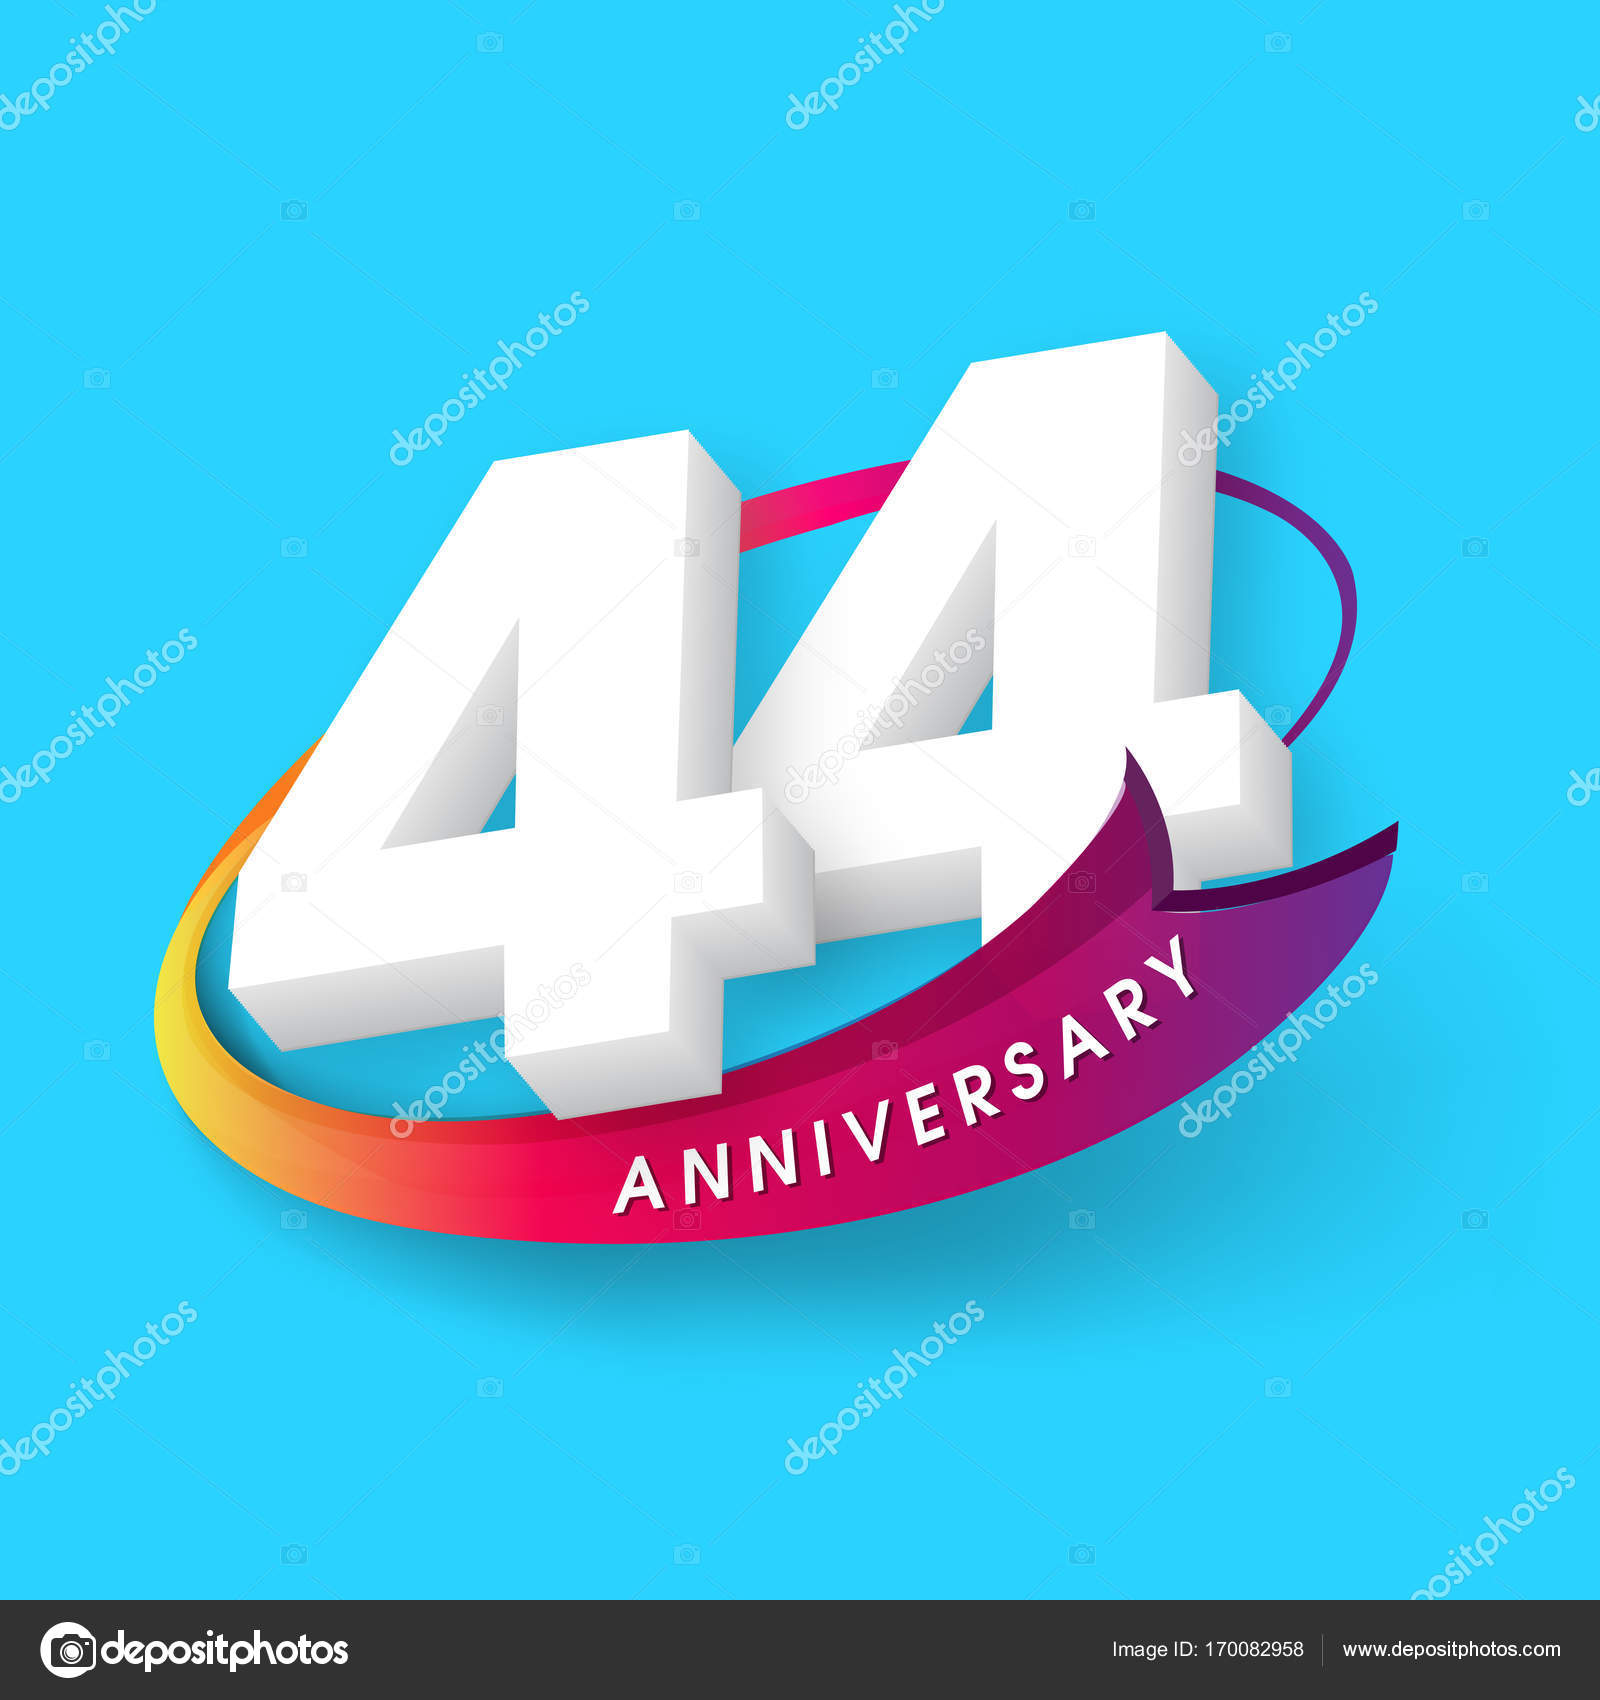 Anniversary emblems 44 anniversary template design stock vector anniversary emblems 44 anniversary template design stock vector biocorpaavc Gallery